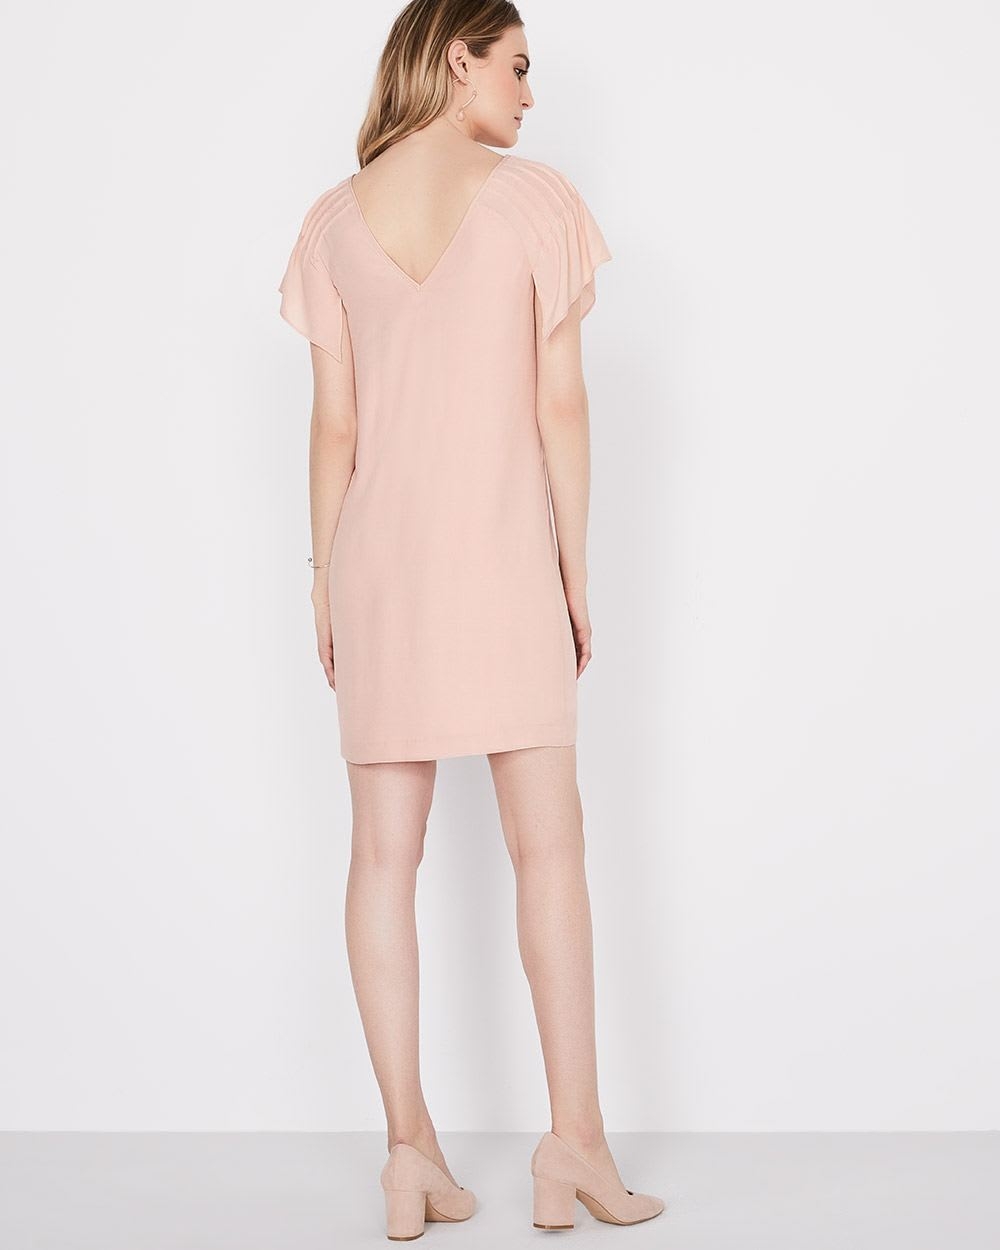 Shift dress with flowy sleeves